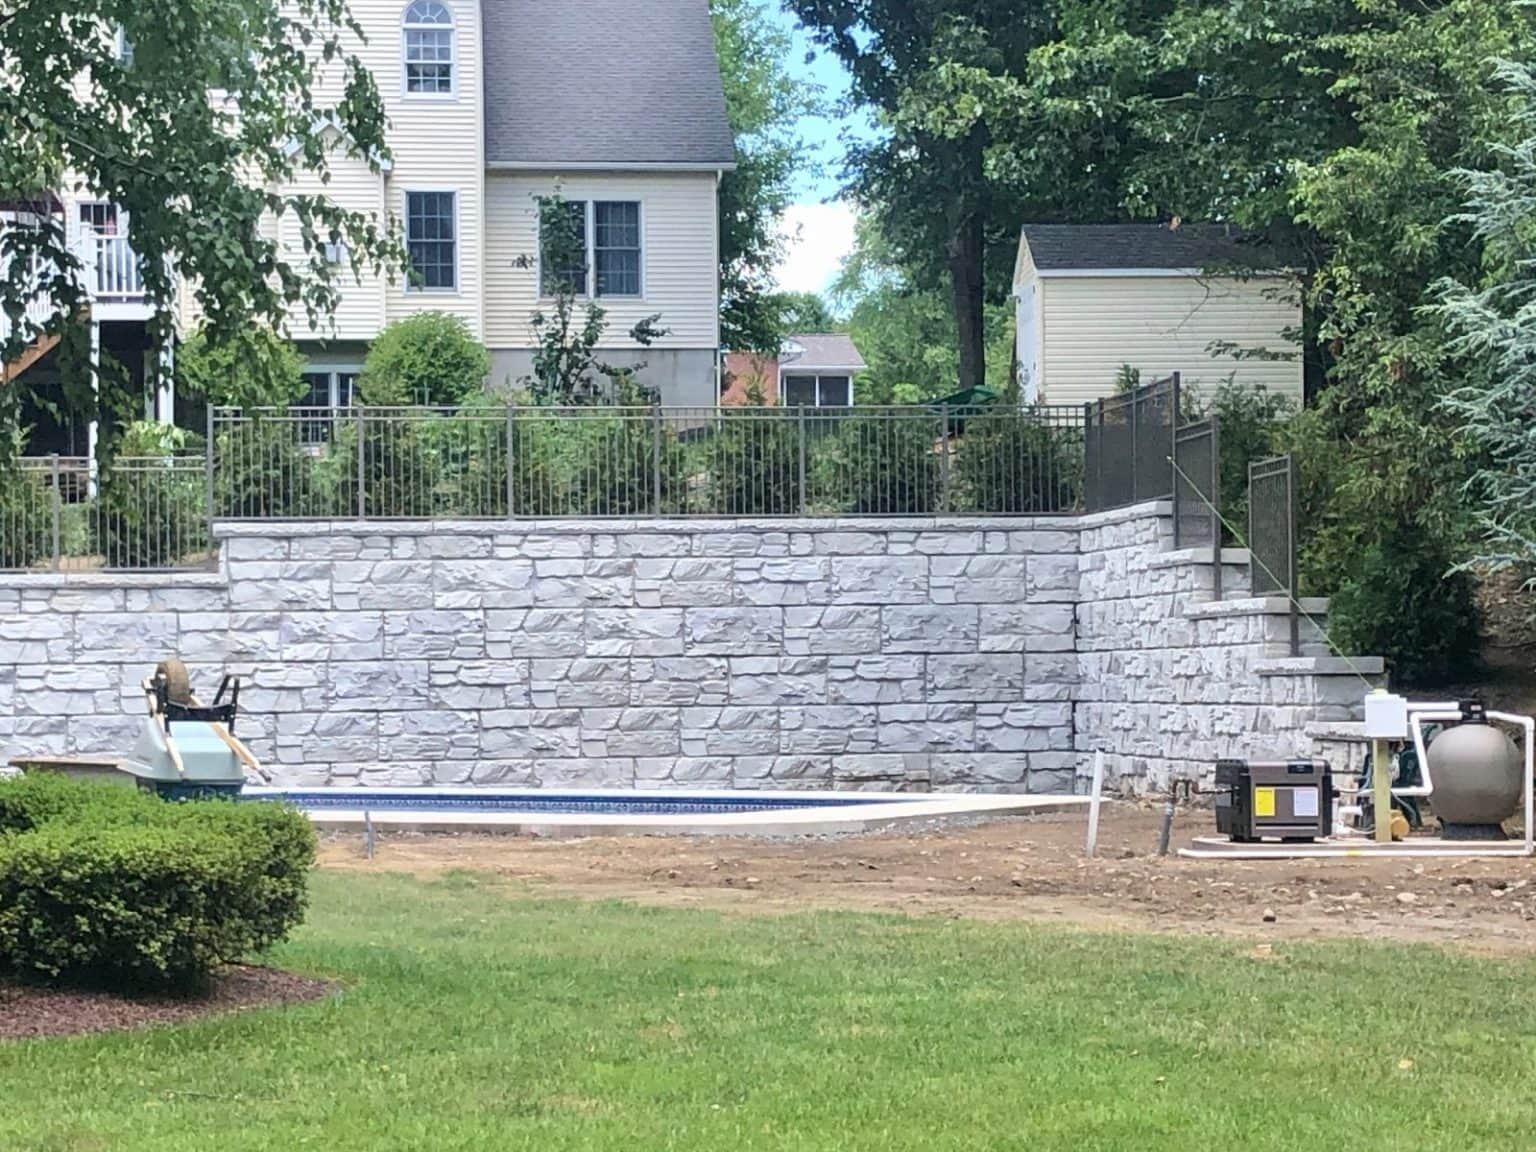 MagnumStone 12 foot retaining wall in a backyard, allowing room for a swimming pool. The wall features an inside corner and top of wall details like caps, fence posts, and step ups.